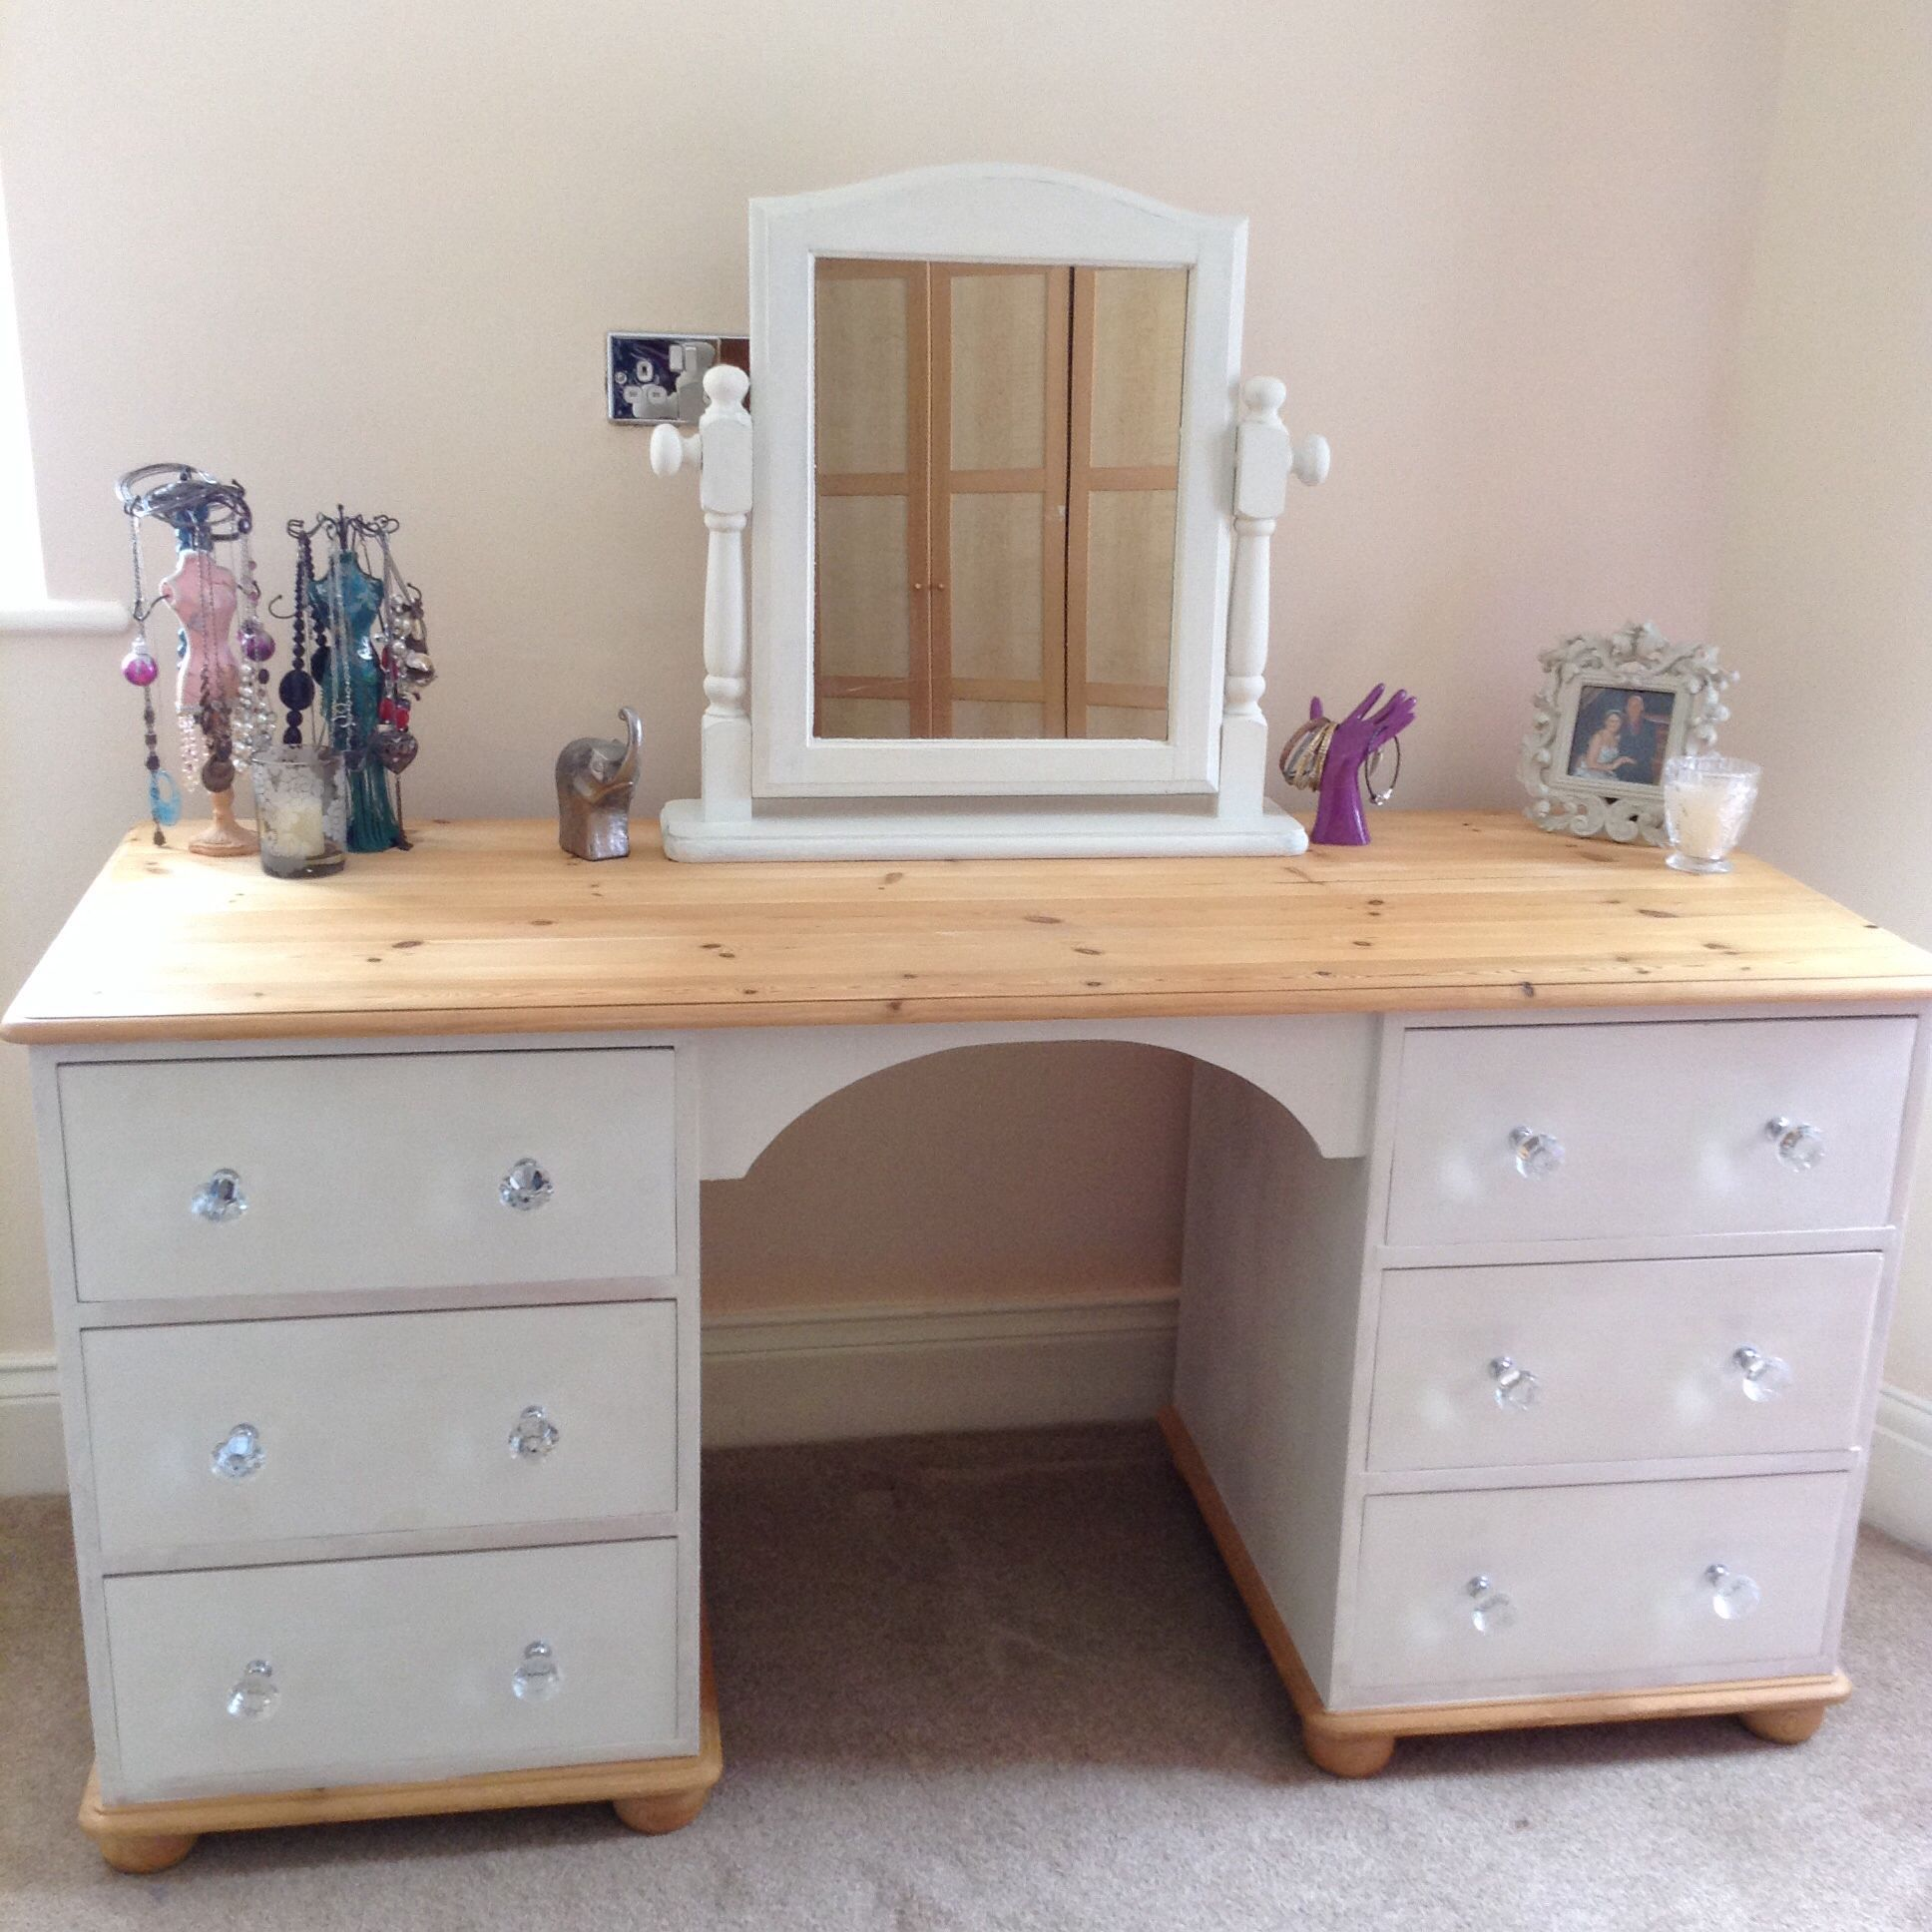 Bedroom Decorating Ideas With Pine Furniture Inside Mansions Bedrooms For Girls Bedroom Yellow Colour Combinations Pinterest Home Decor Bedroom: Pine Dressing Table With Annie Sloan Paint Makeover. Tip